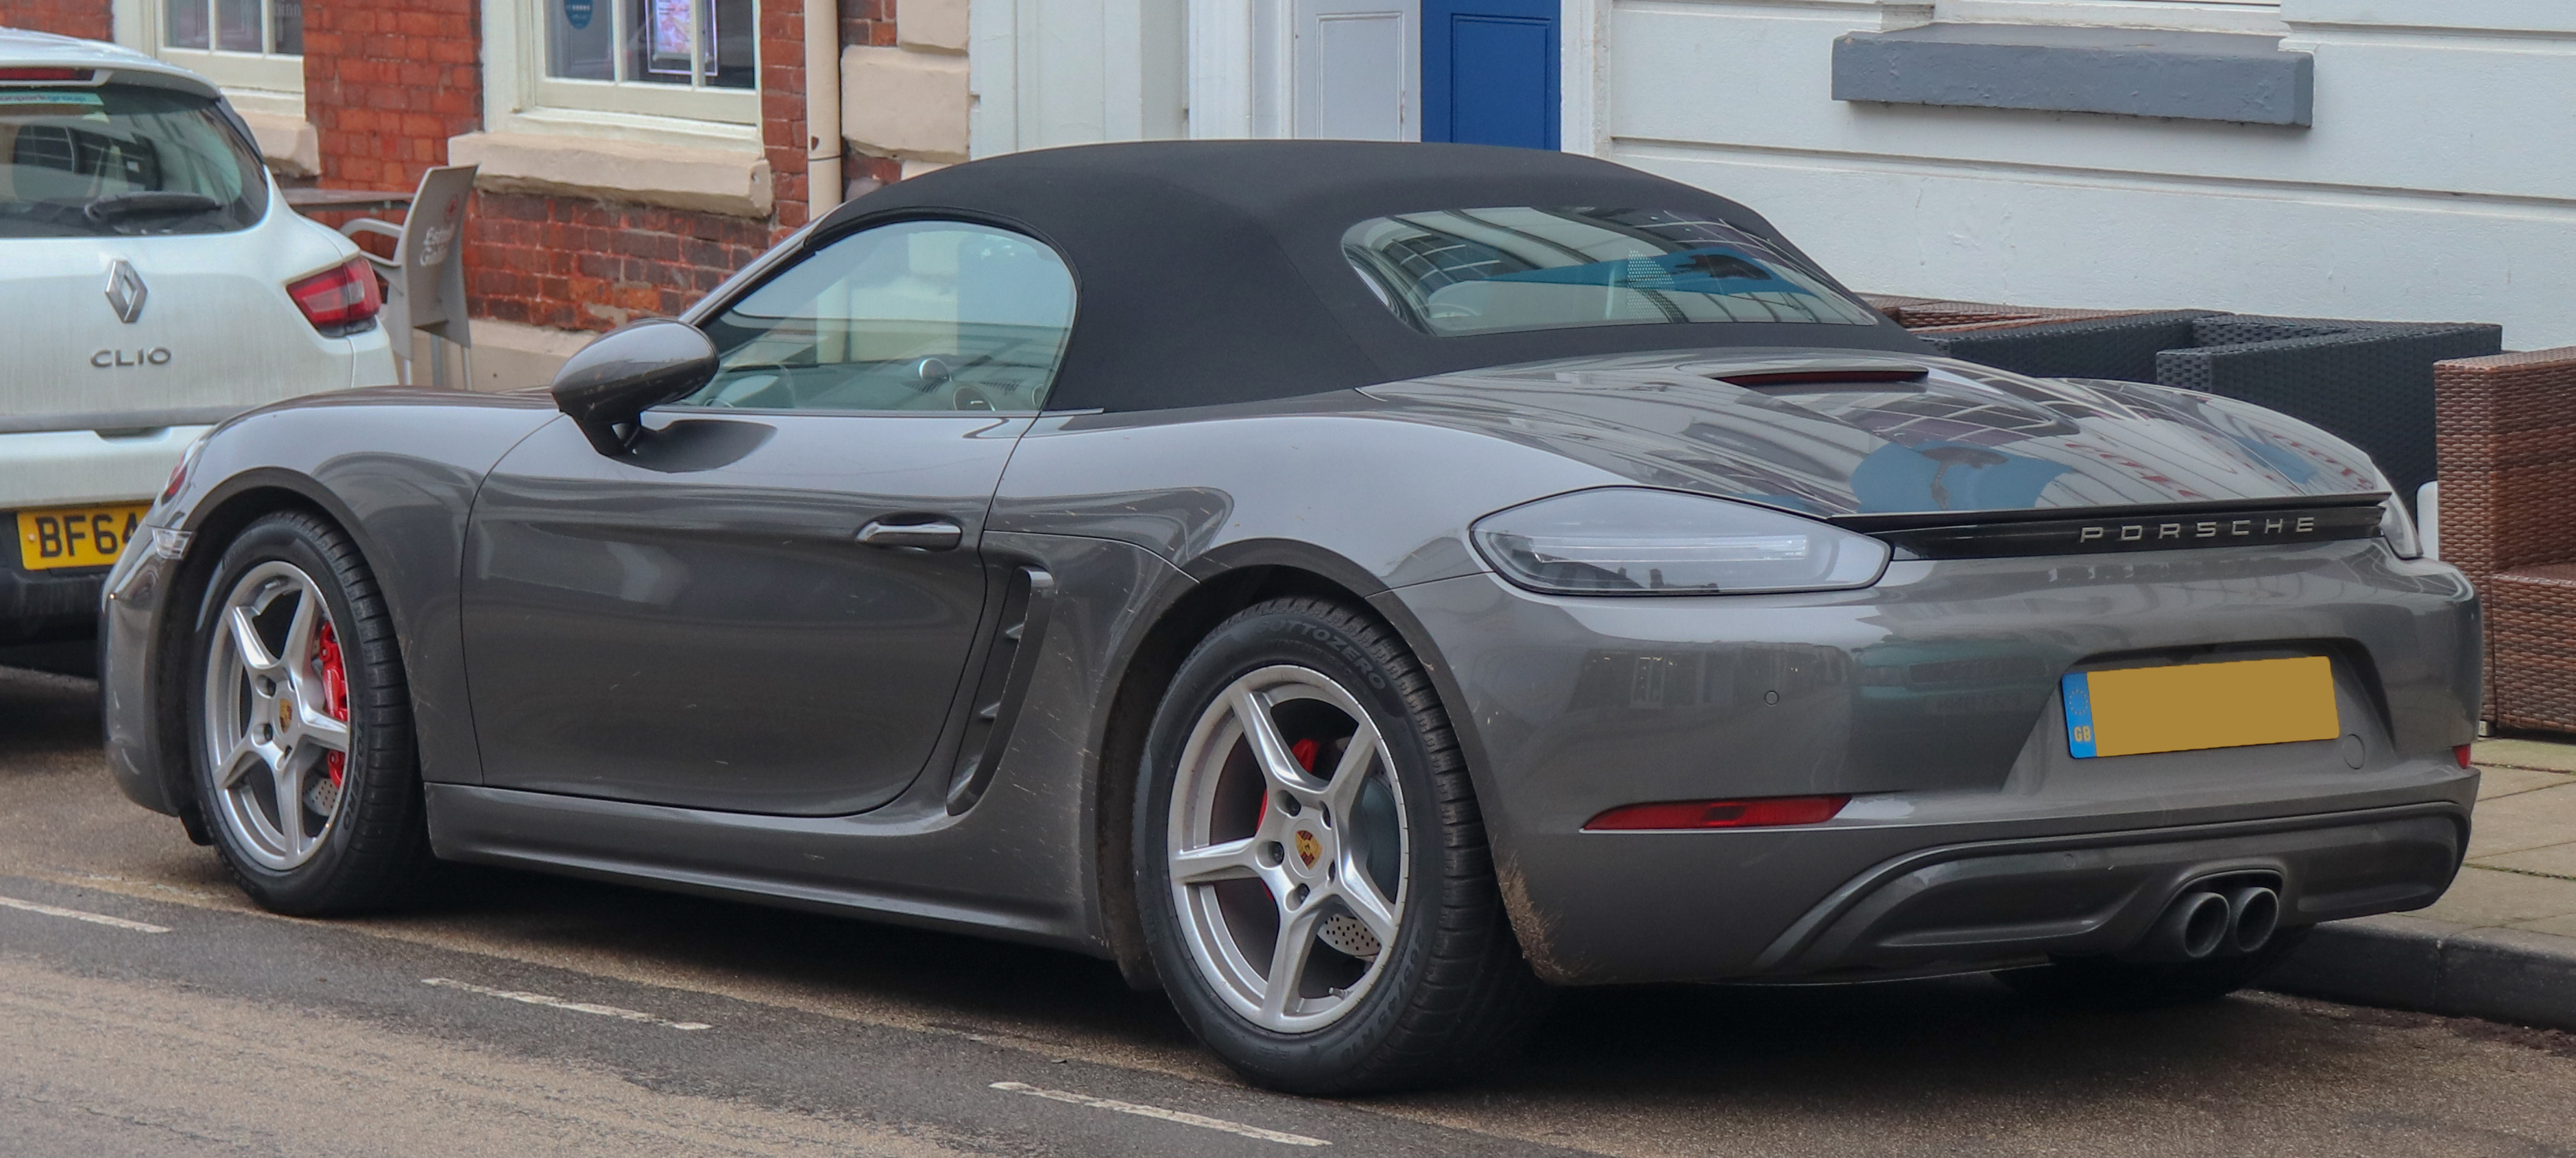 File 2018 Porsche 718 Boxster S S A 2 5 Rear Jpg Wikimedia Commons